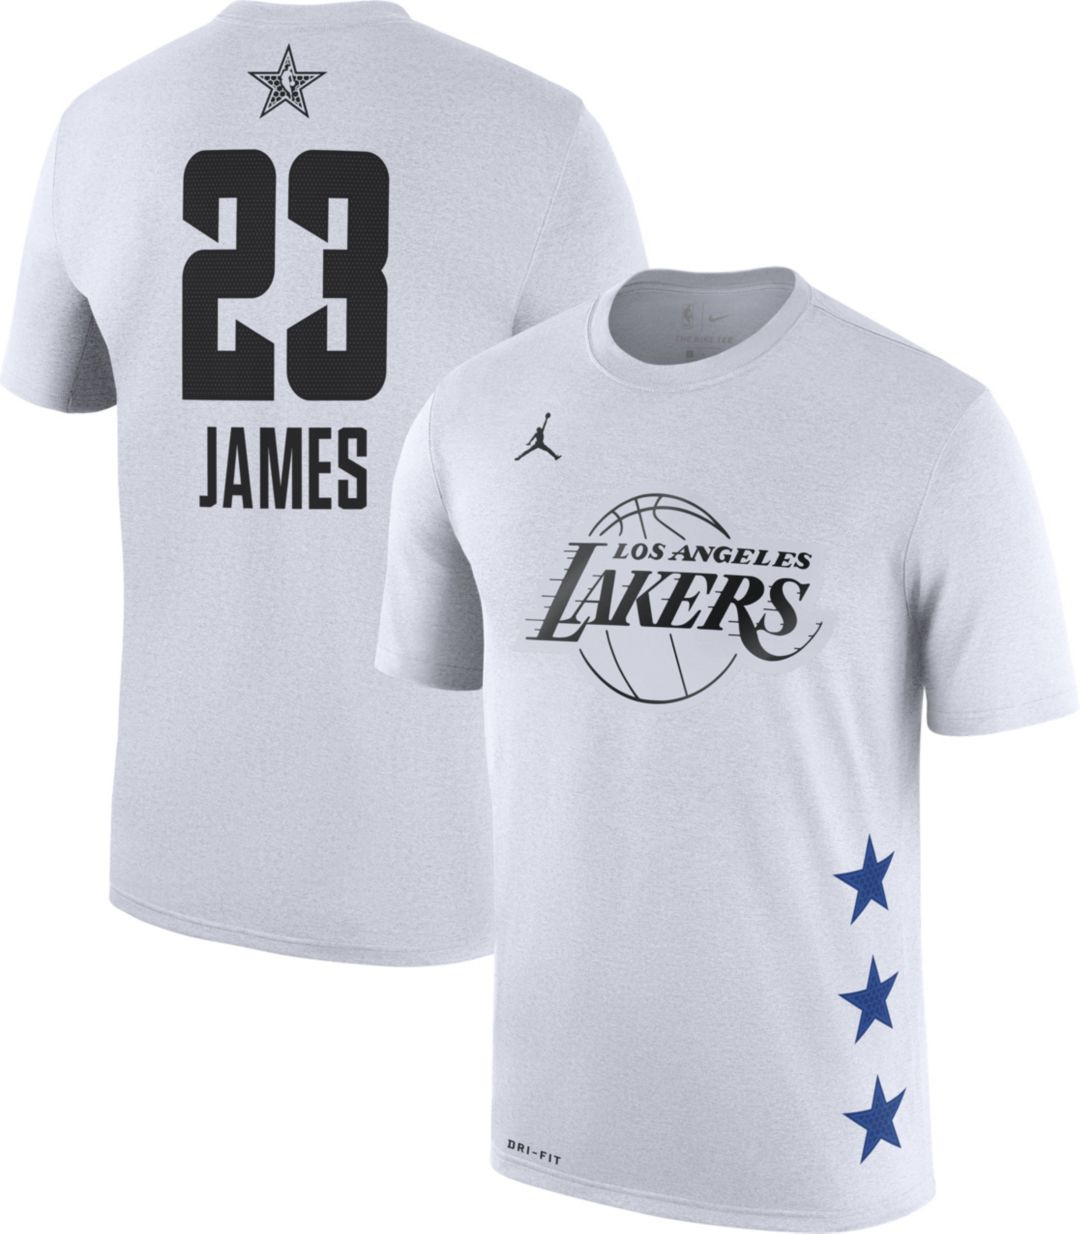 brand new 7f1a2 41416 lebron dri fit shirts